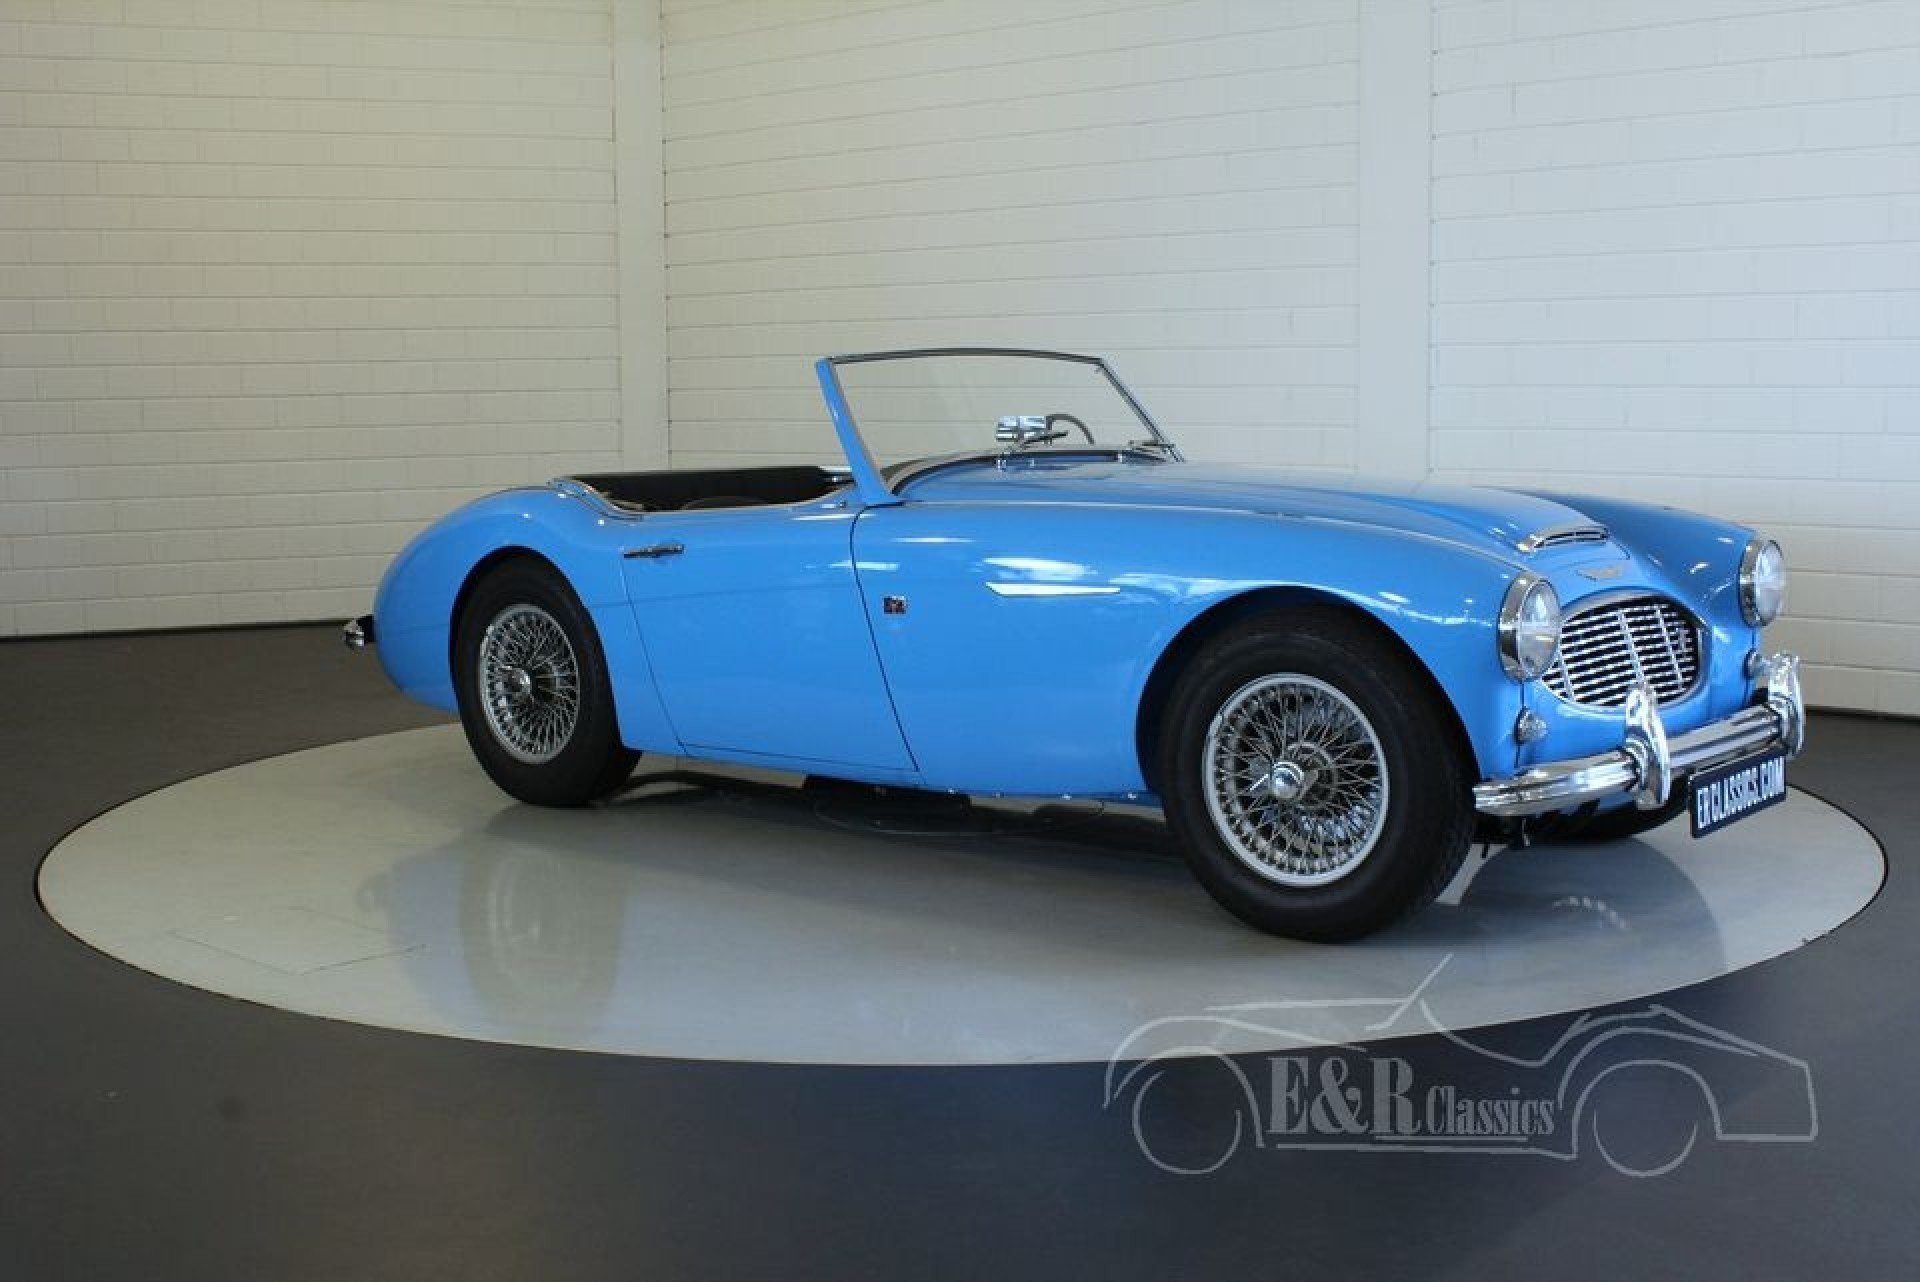 austin healey 3000 mki 1960 vendre erclassics. Black Bedroom Furniture Sets. Home Design Ideas